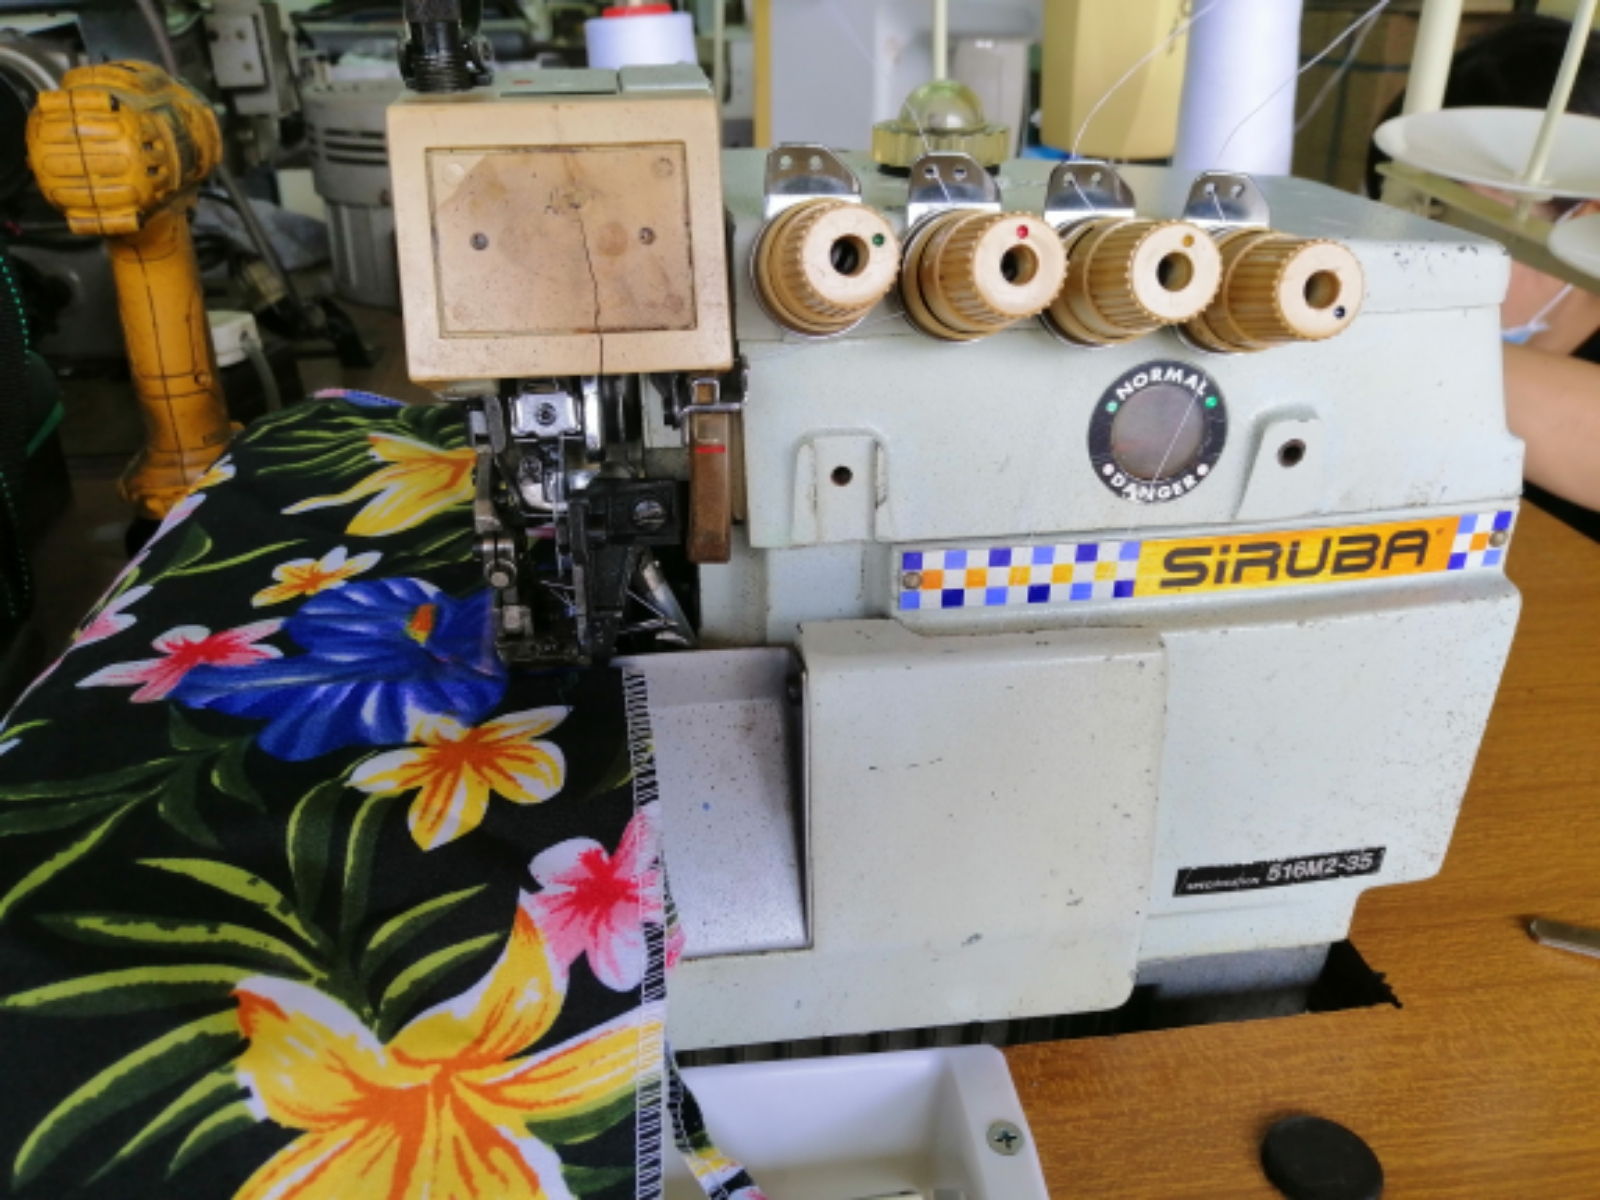 SIRUBA INDUSTRIAL OVERLOCK SEWING MACHINE